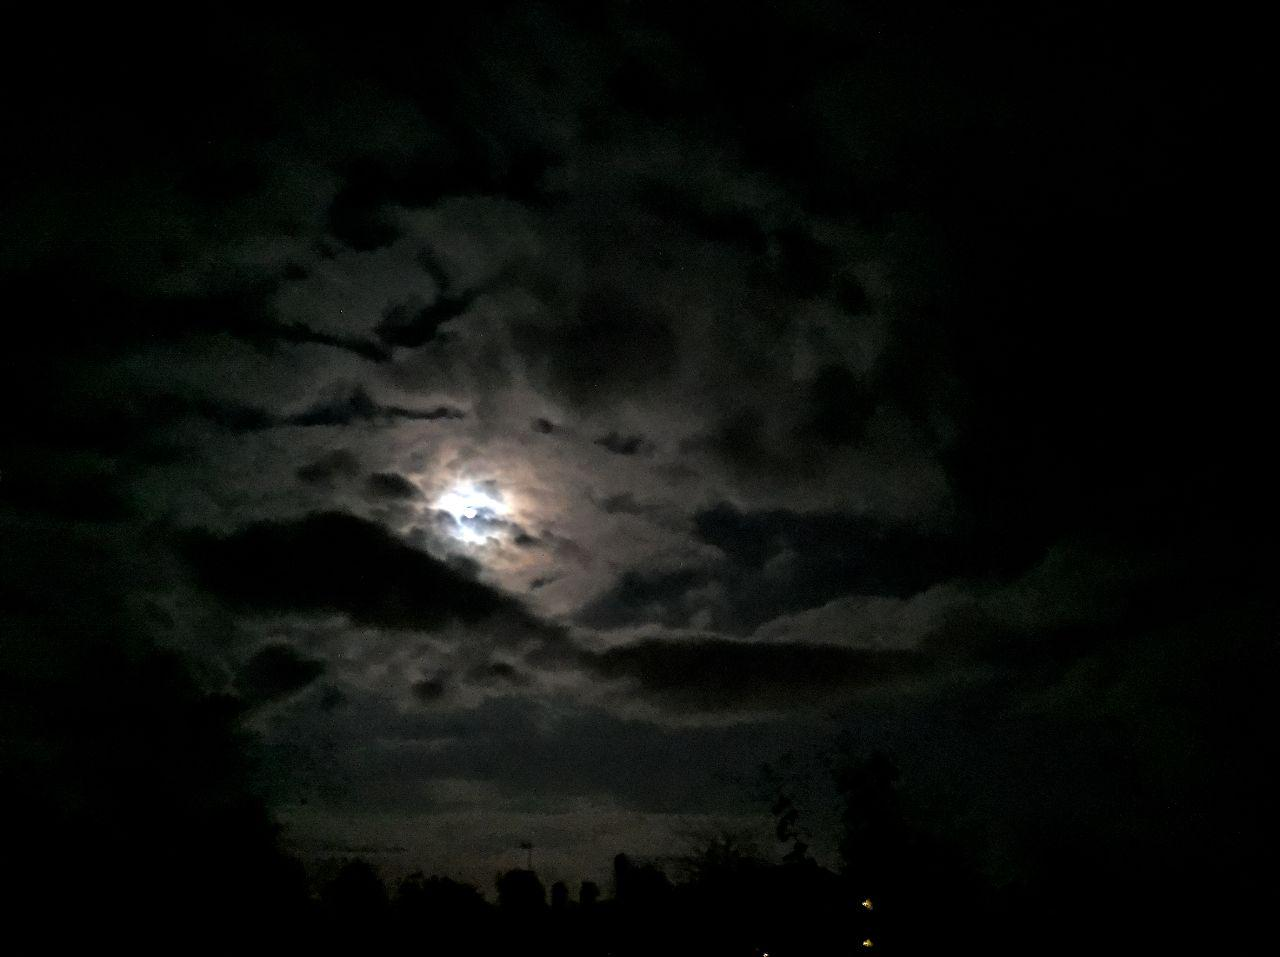 Night sky with some clouds in front of a bright moon